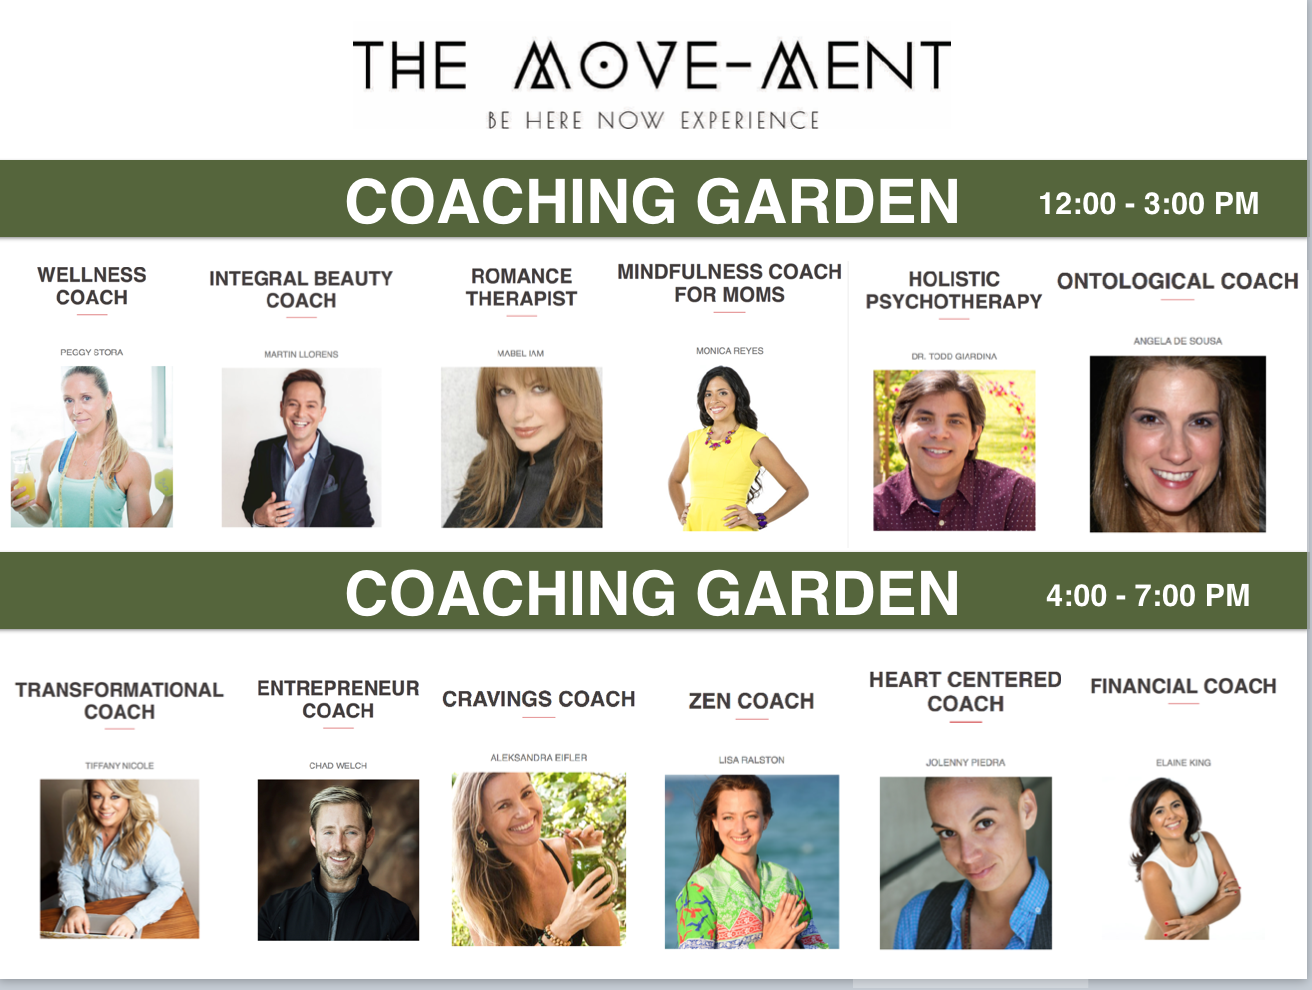 The Move-ment Be Here Now Experience coaches